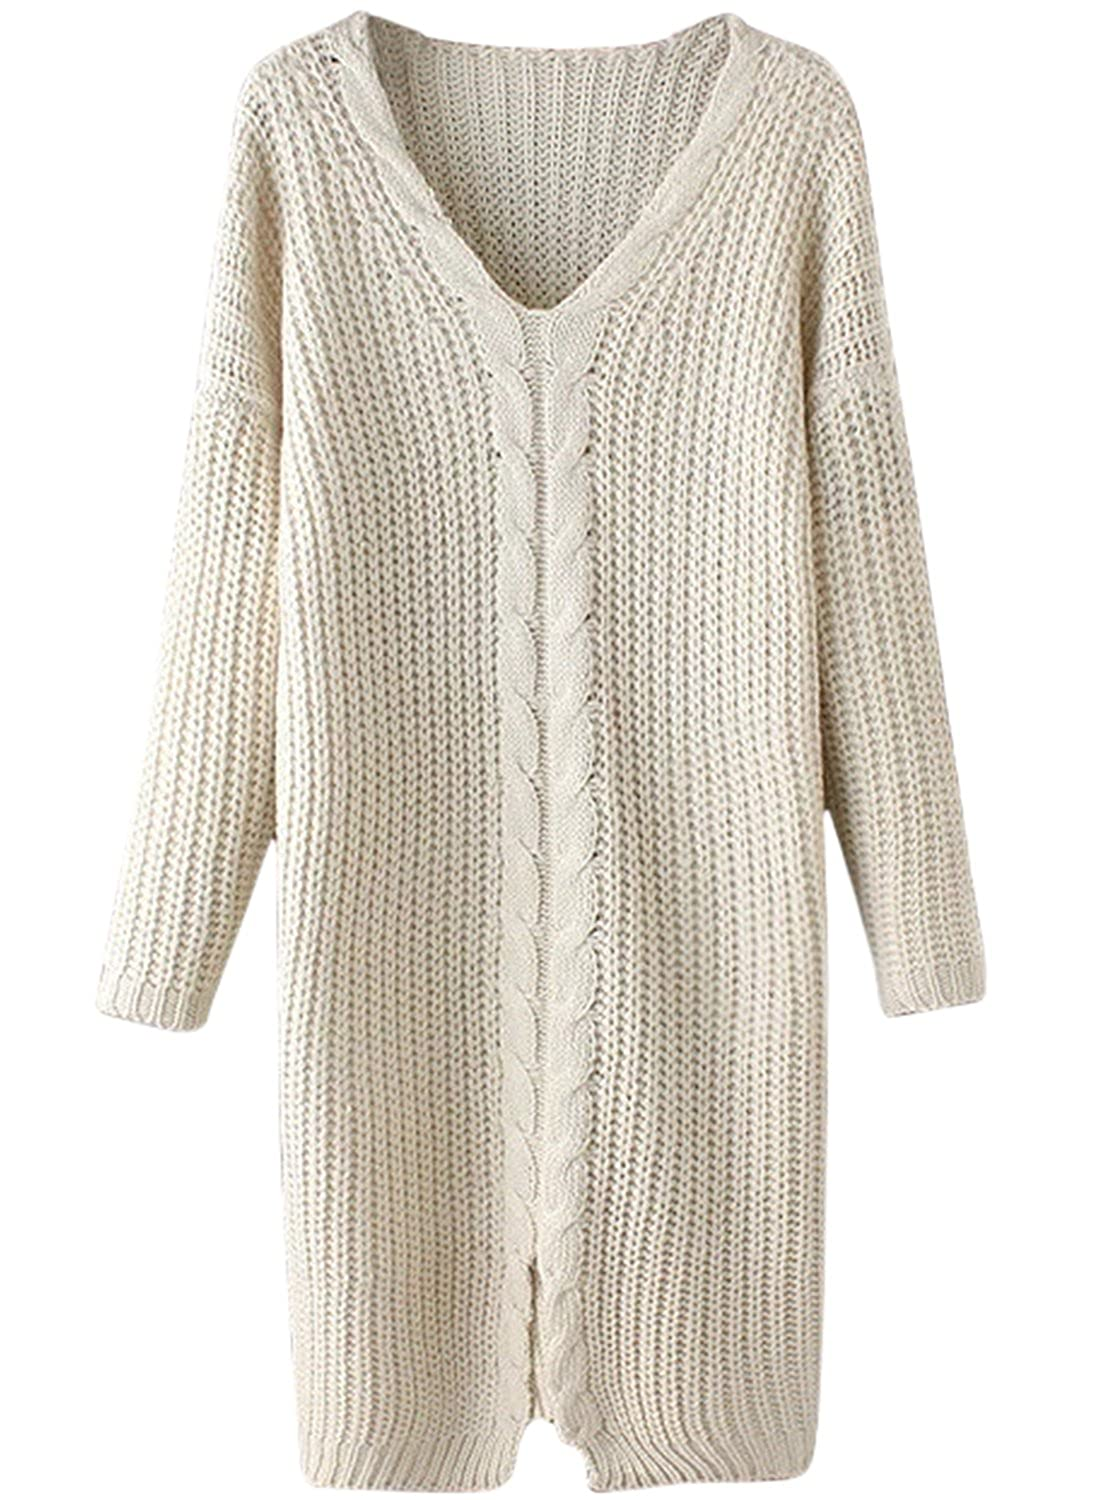 ACHICGIRL Women's V Neck front Slit Cable Knitted Pullover Sweater